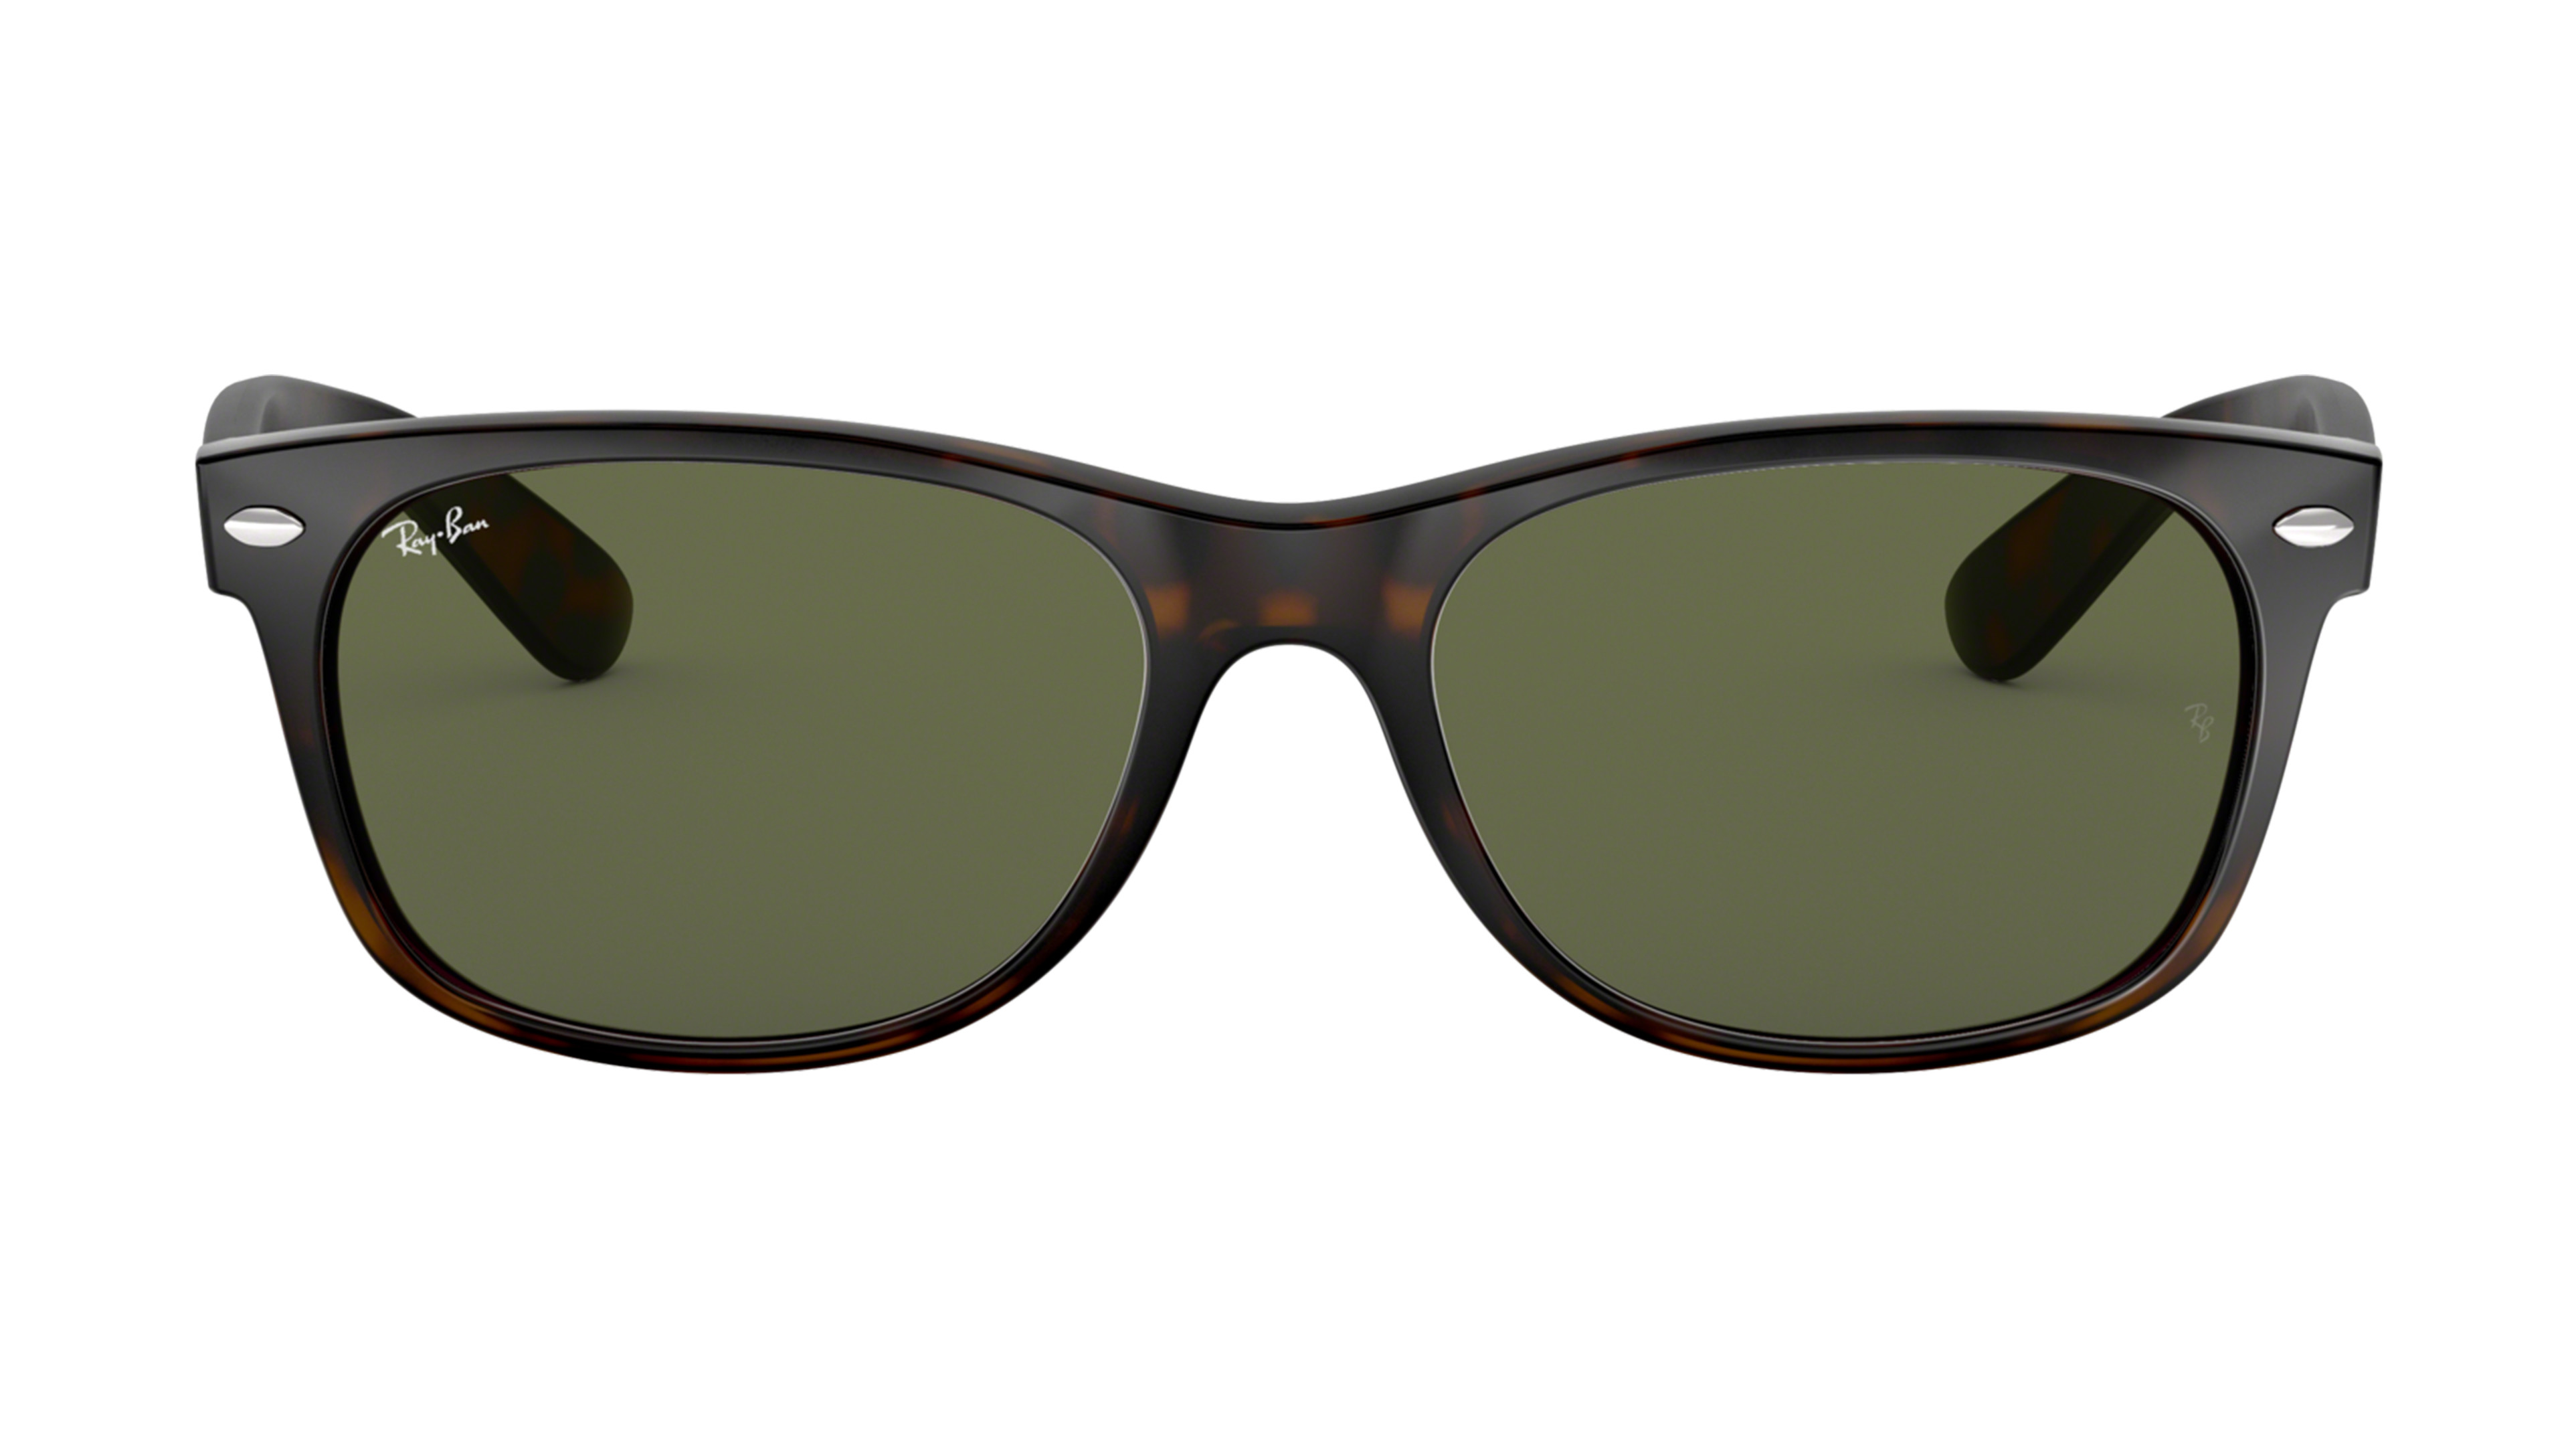 8053672562712-front-Ray-Ban-0RB2132-902